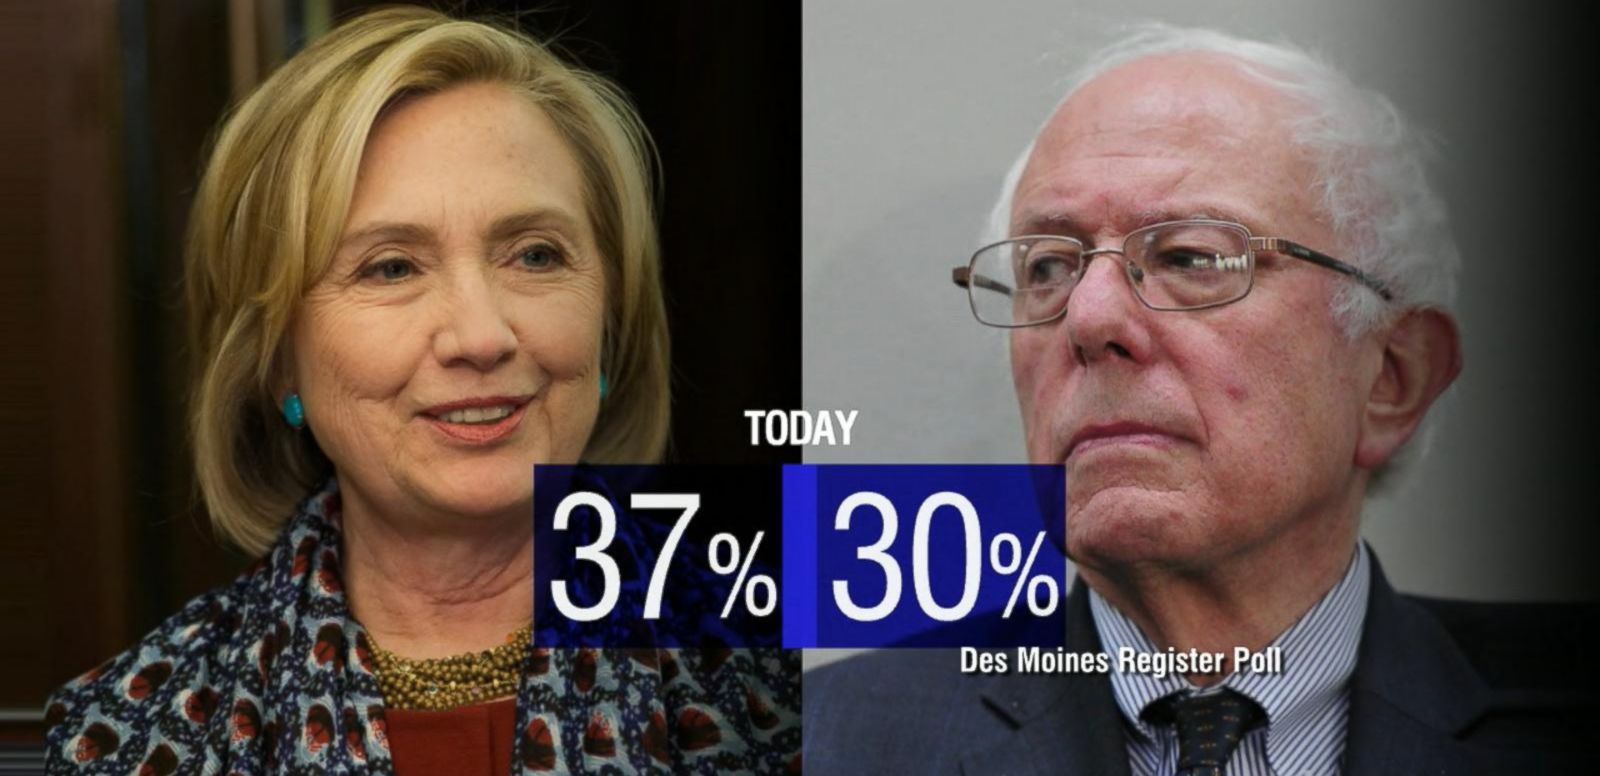 VIDEO: Sanders Gains on Clinton in Iowa Poll